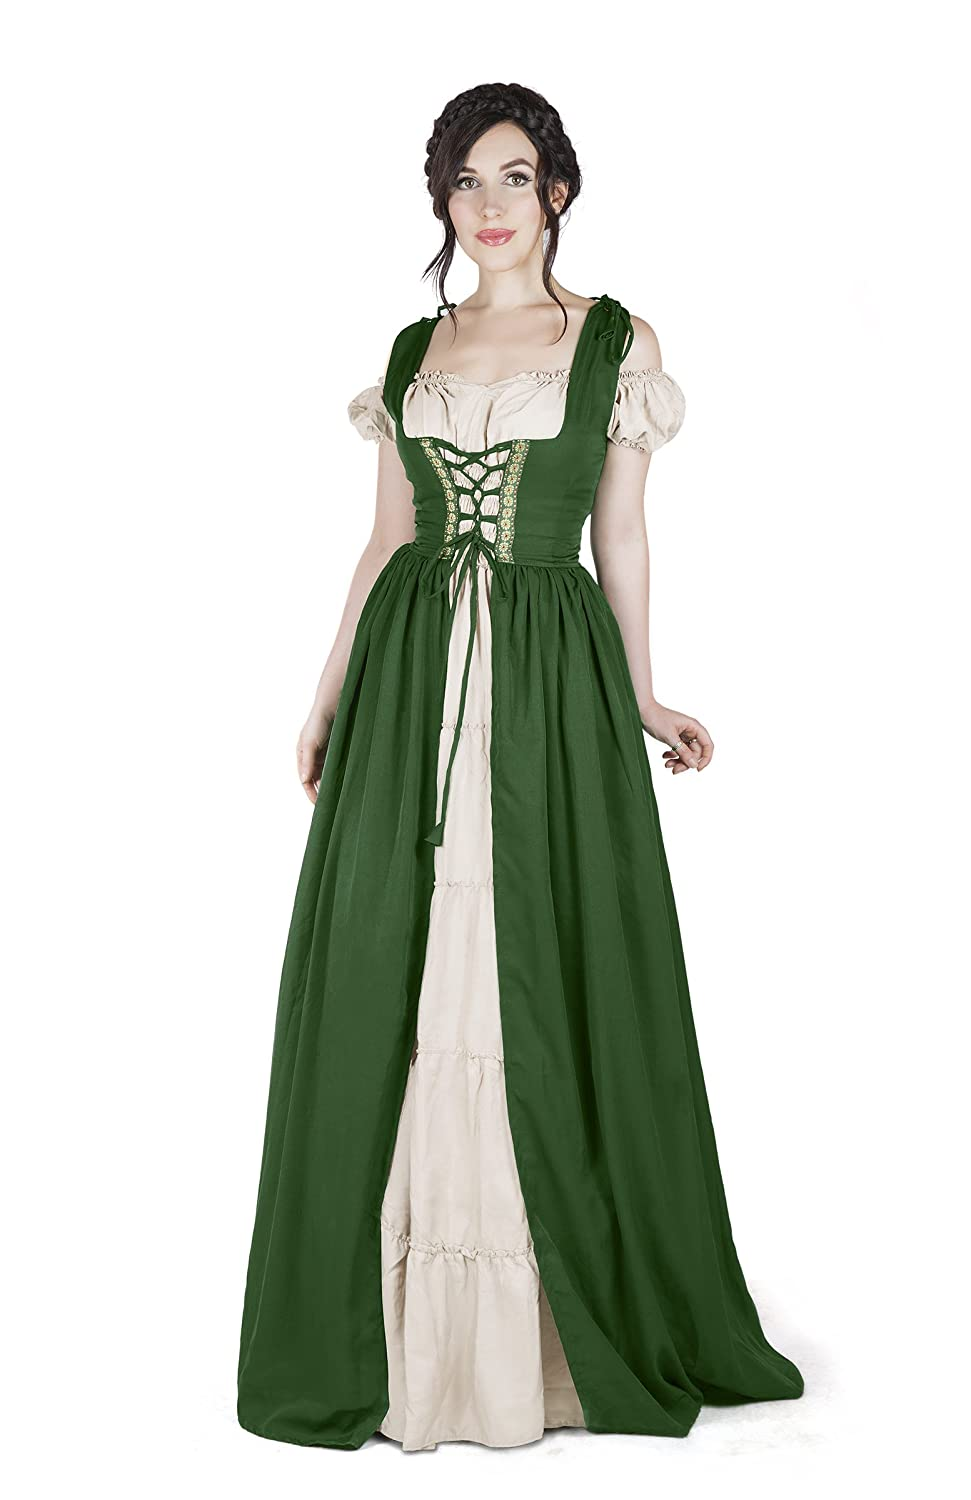 f62550c2f1c6 Medieval Dresses For Sale Cheap